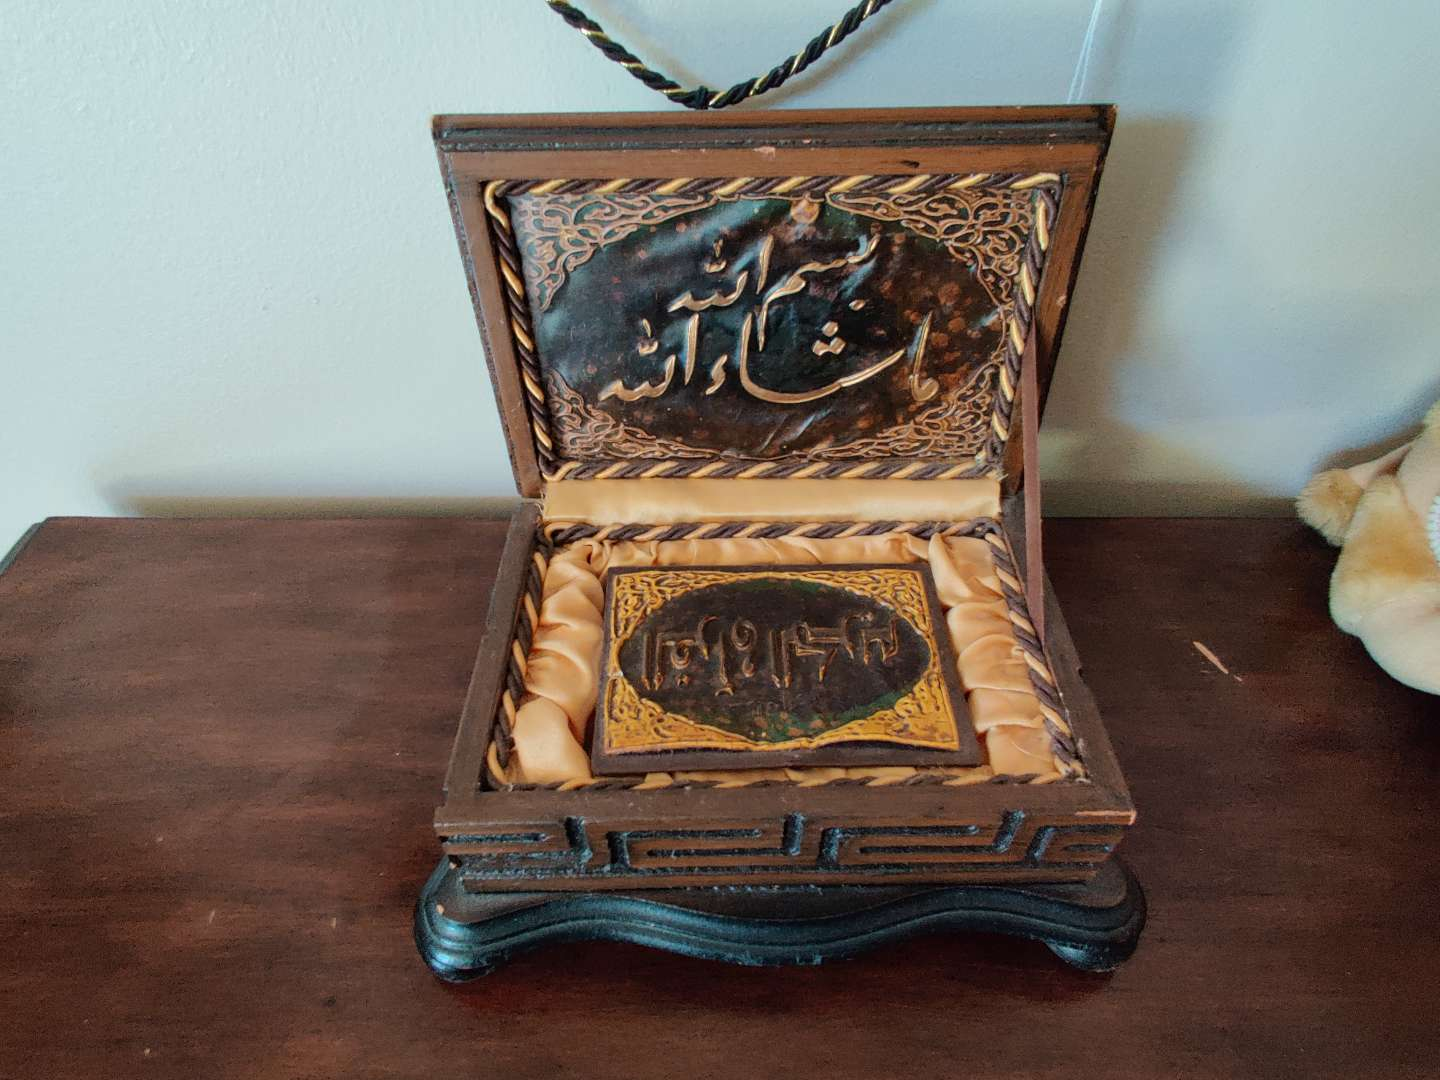 30 very nice copy of the Quran in a decorative wood box handmade